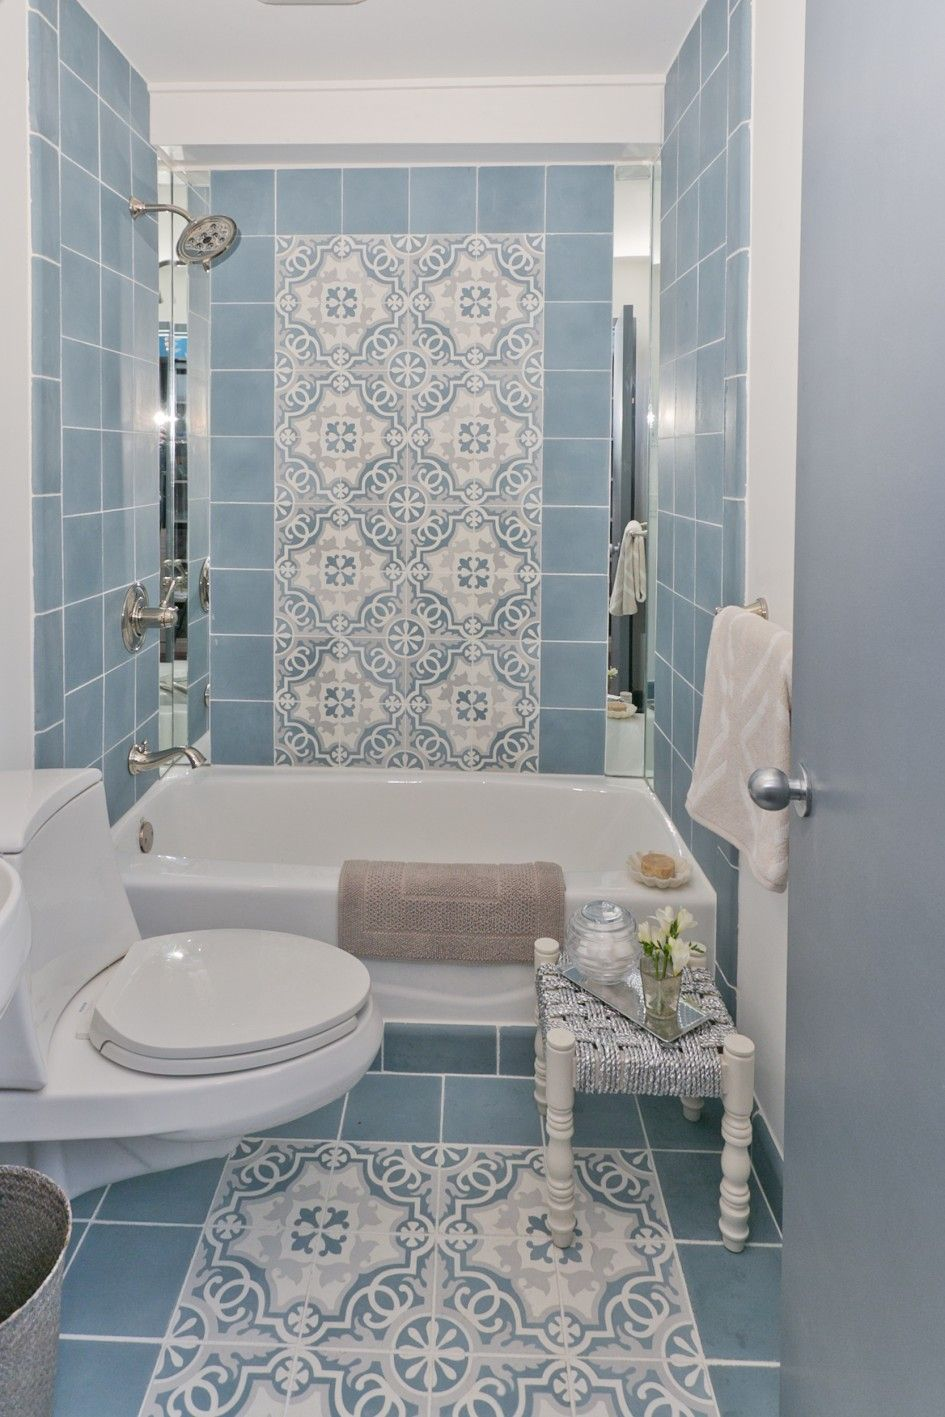 Bathroom tiles designs for small spaces - 40 Vintage Blue Bathroom Tiles Ideas And Pictures Vintage Bathroom Designs Vintage Bathroom Designs